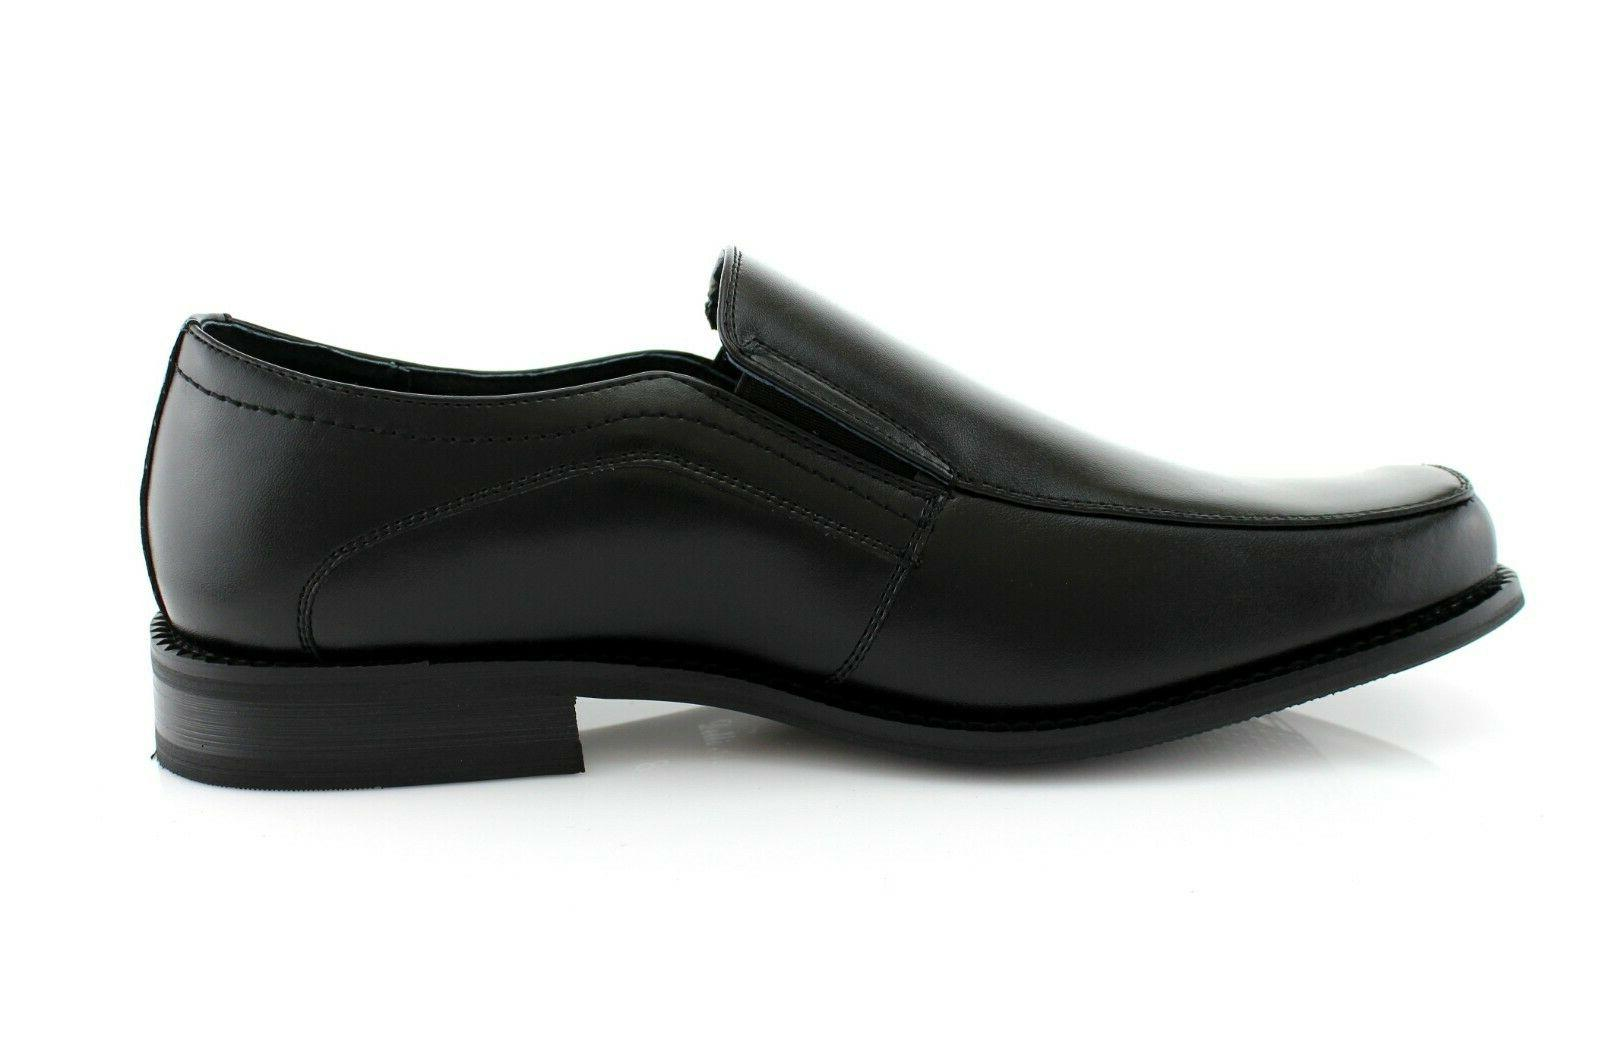 Men's Leather Work Dress Shoes Slip-On Loafers